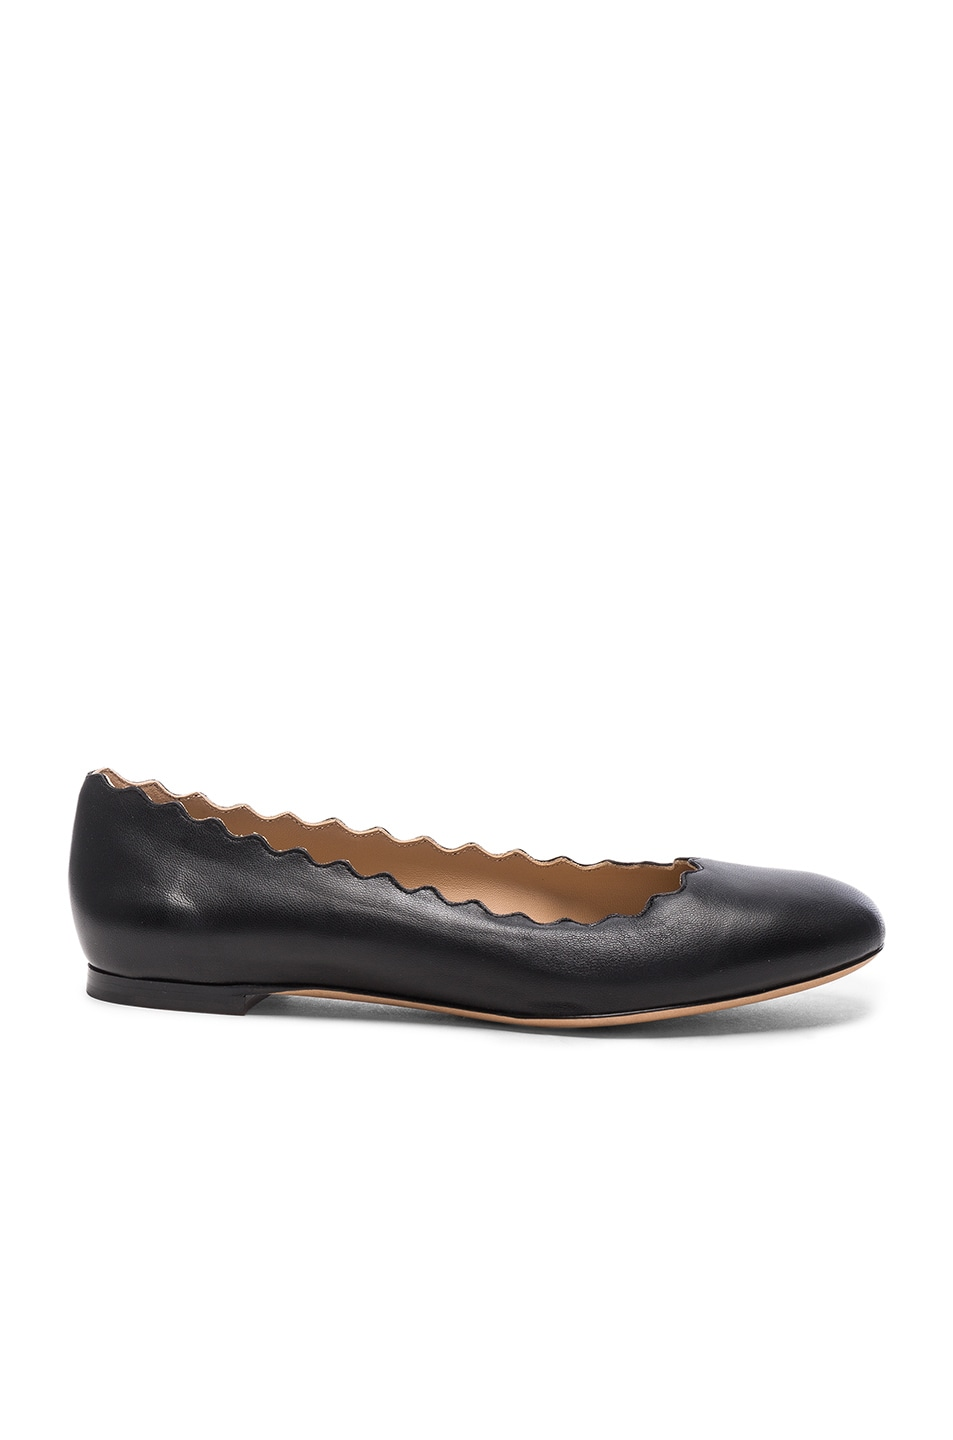 Image 1 of Chloe Lauren Leather Flats in Black